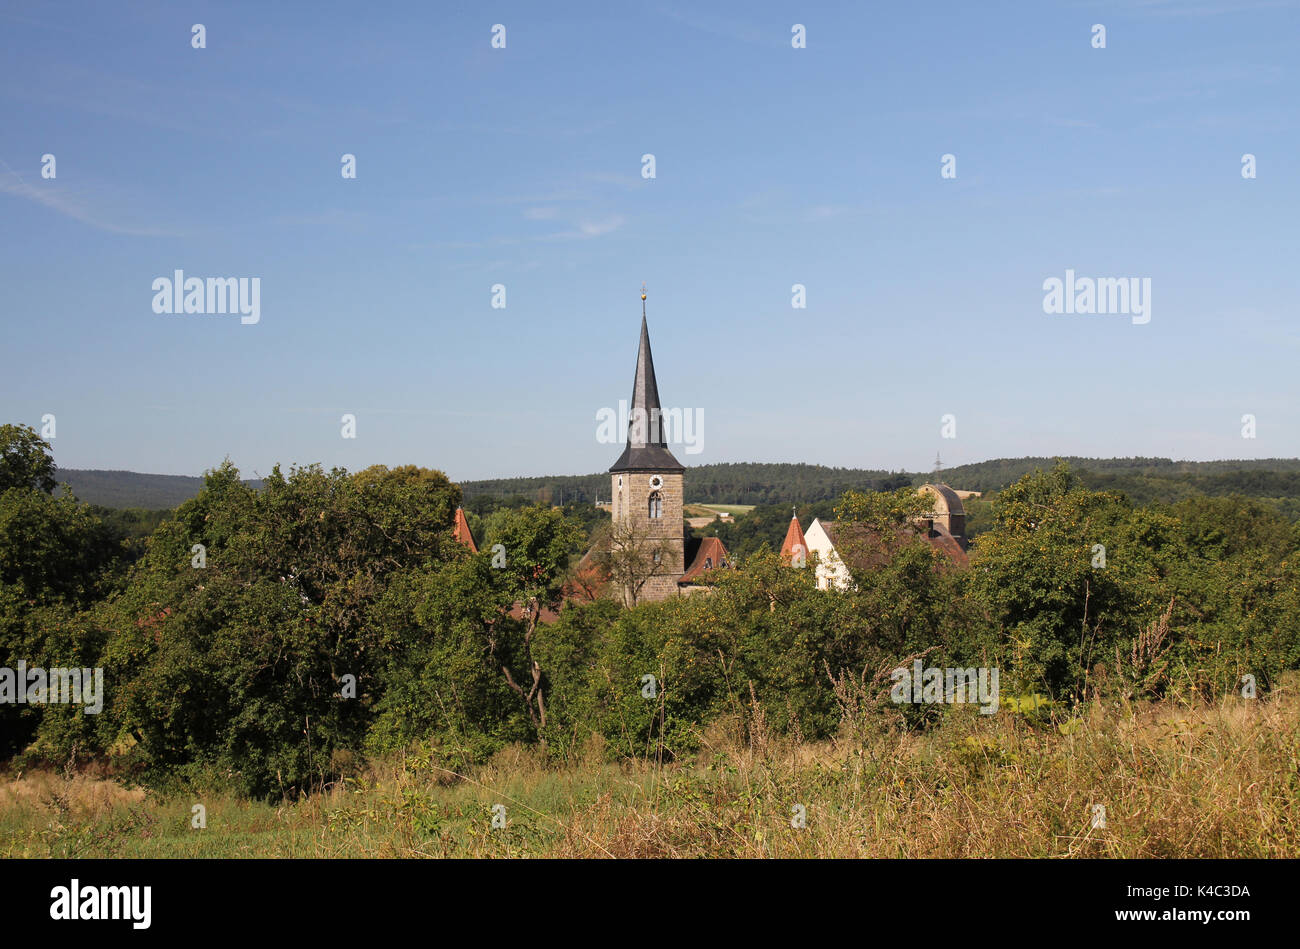 Sesslach In Upper Franconia, Picturesquely Situated, Coburg County - Stock Image